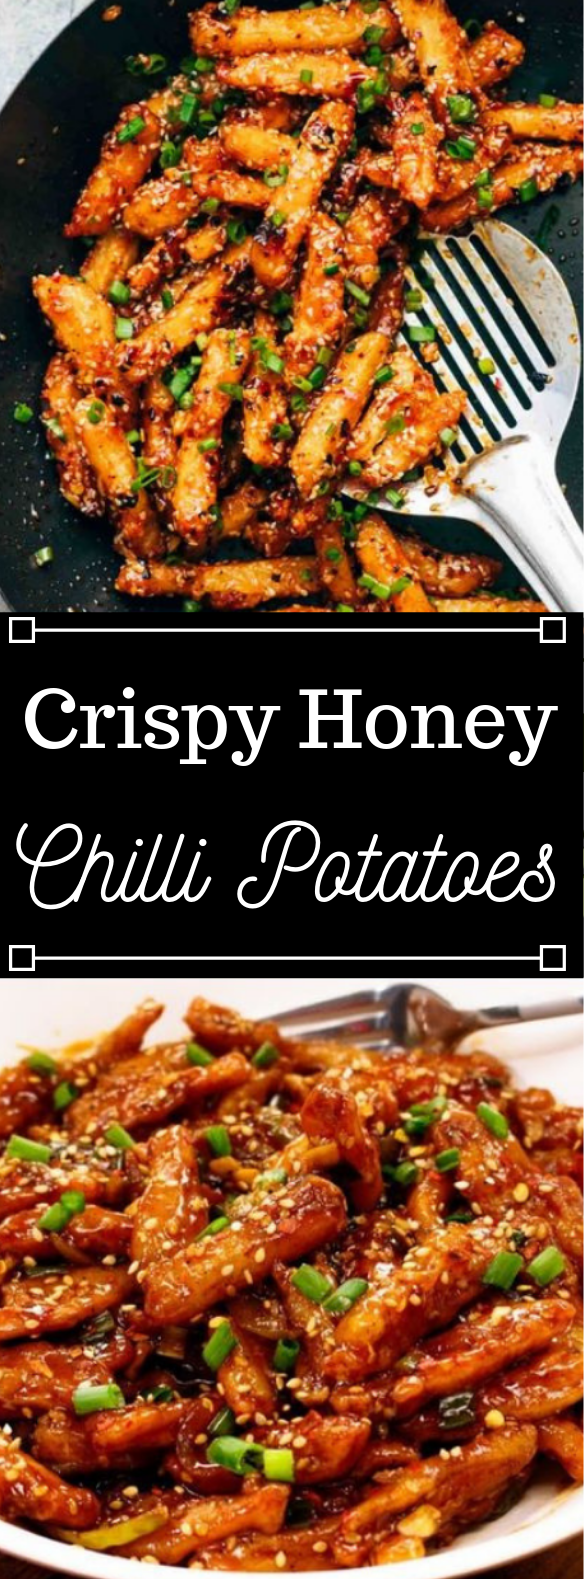 Crispy Honey Chilli Potatoes #vegan #potato #vegetarian #yummy #easy